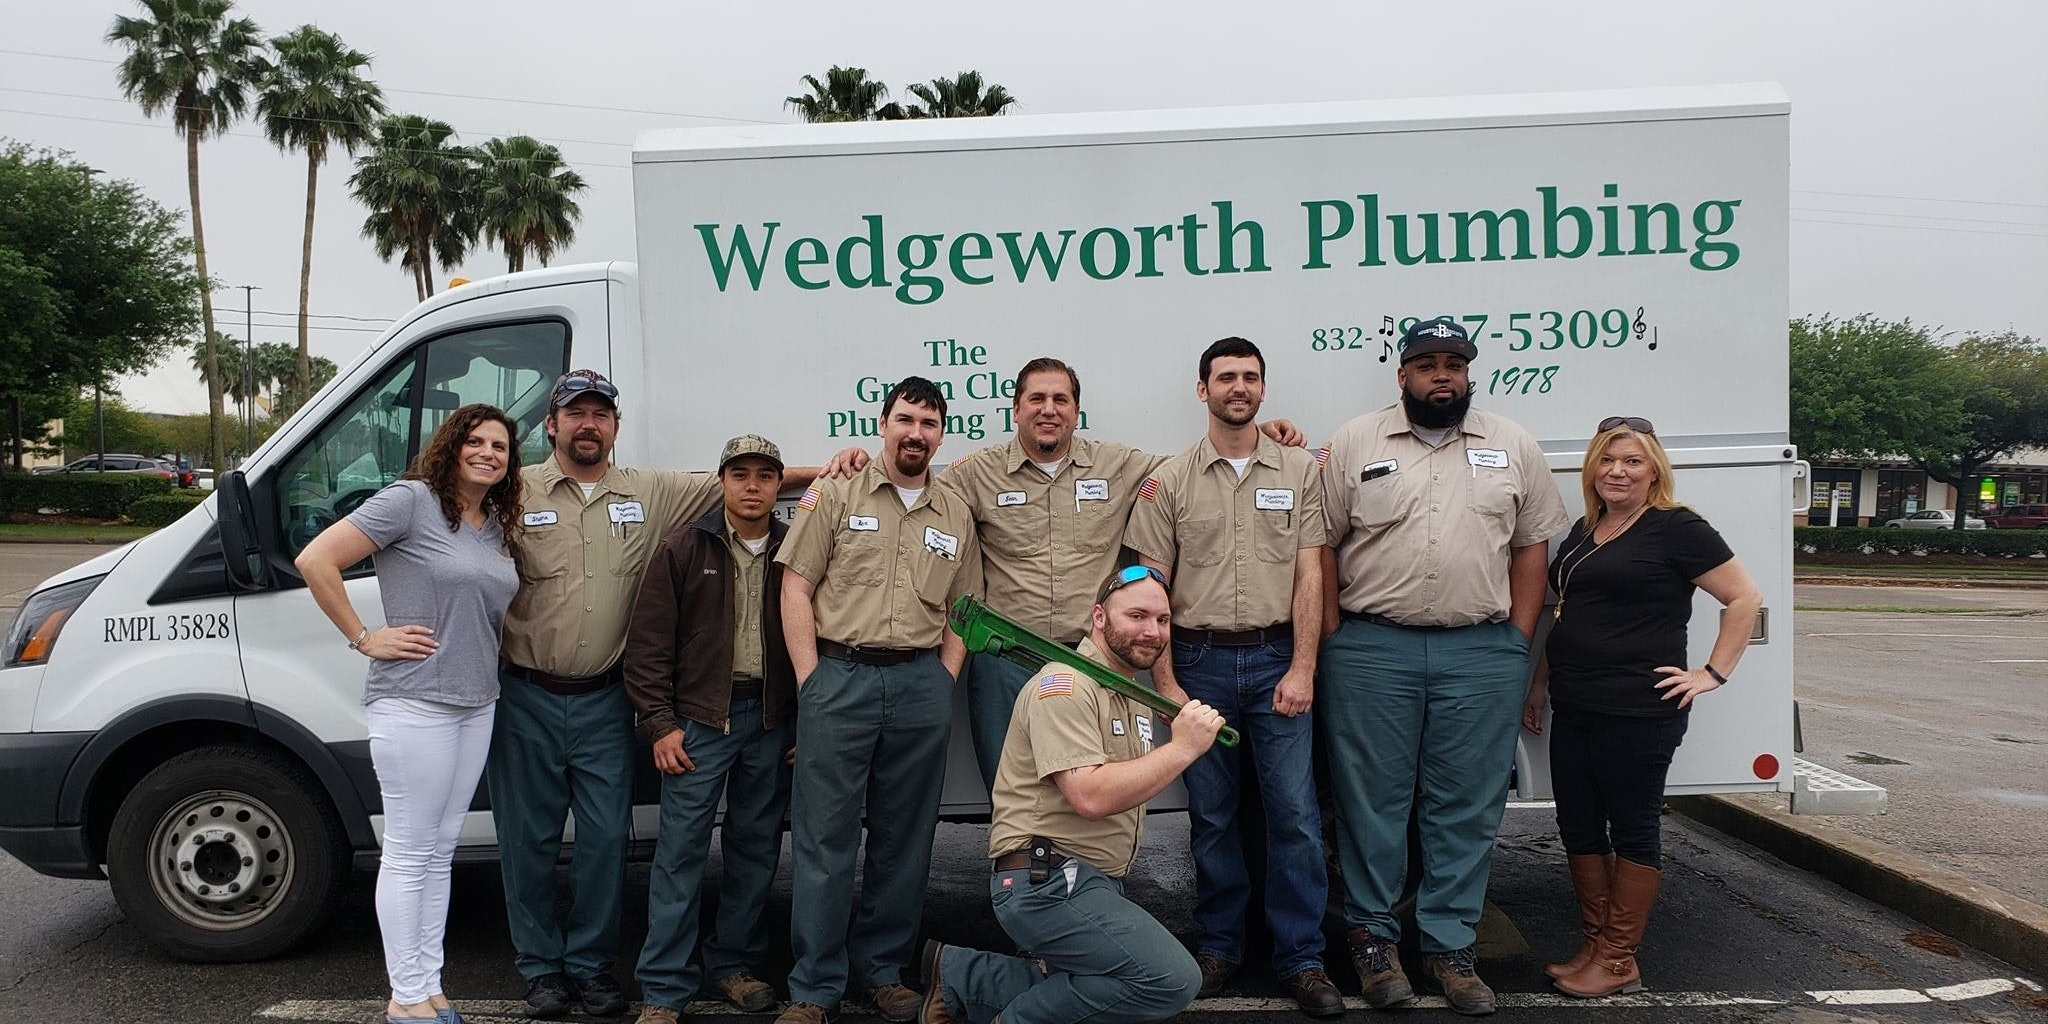 Wedgeworth Plumbing